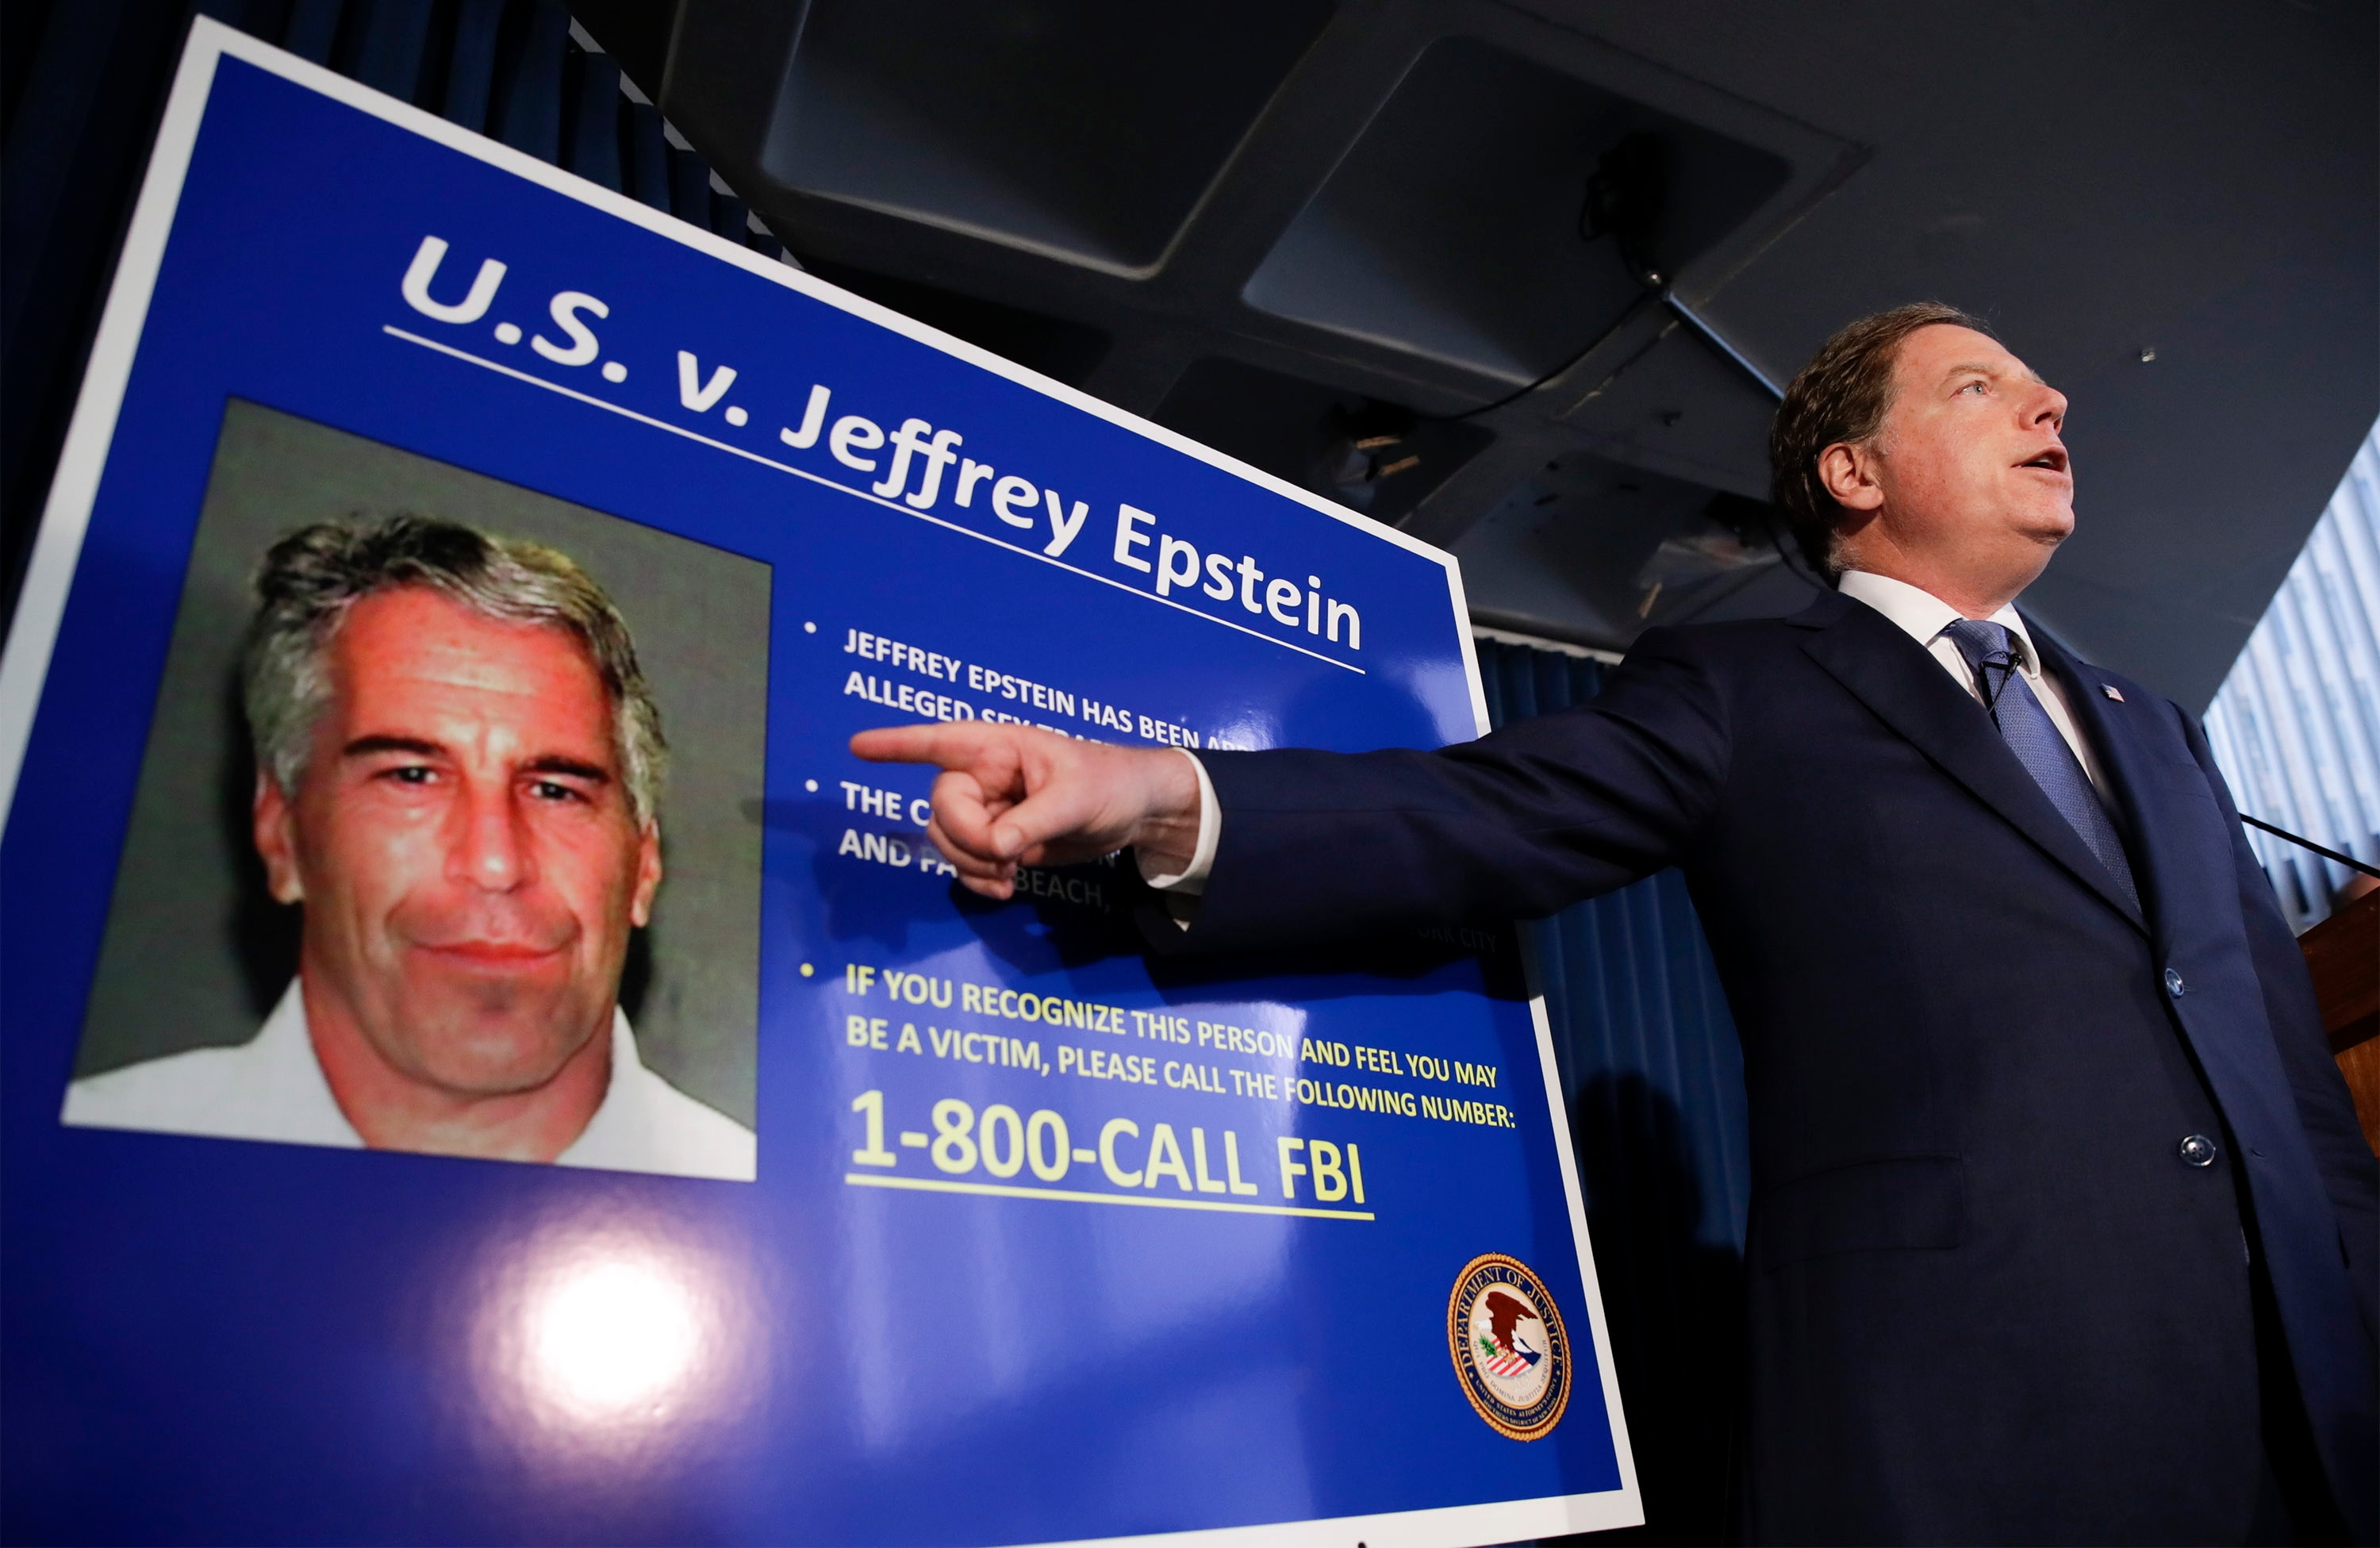 Jeffrey Epstein investigation: US Attorney General criticises NY  prison